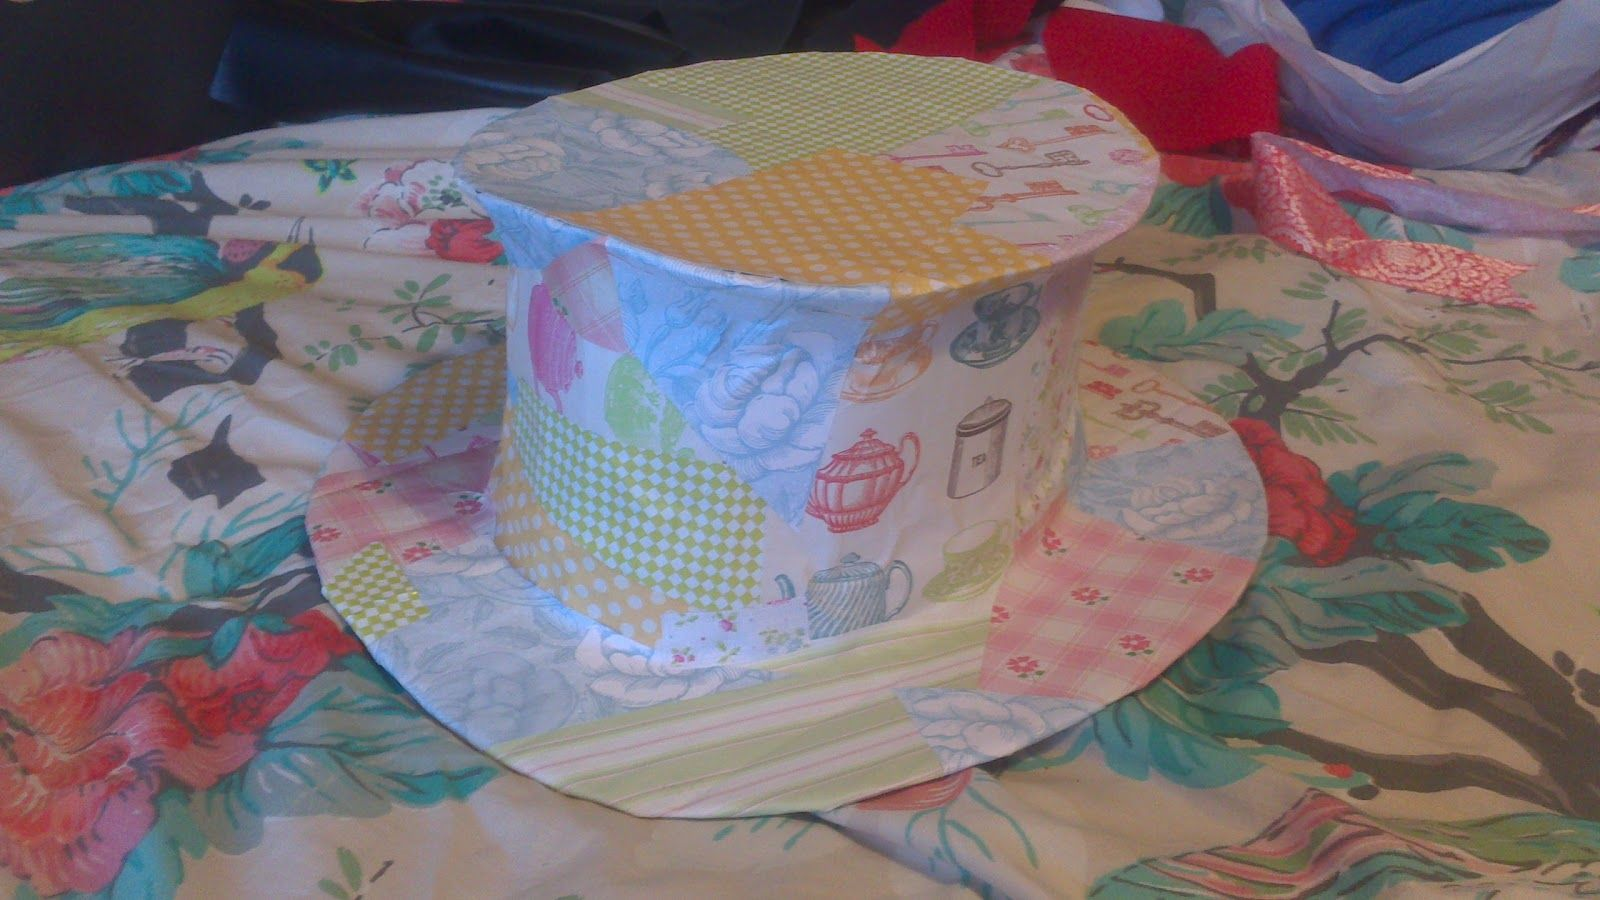 cardboard 'patchwork' top hat for a mad hatter's tea party